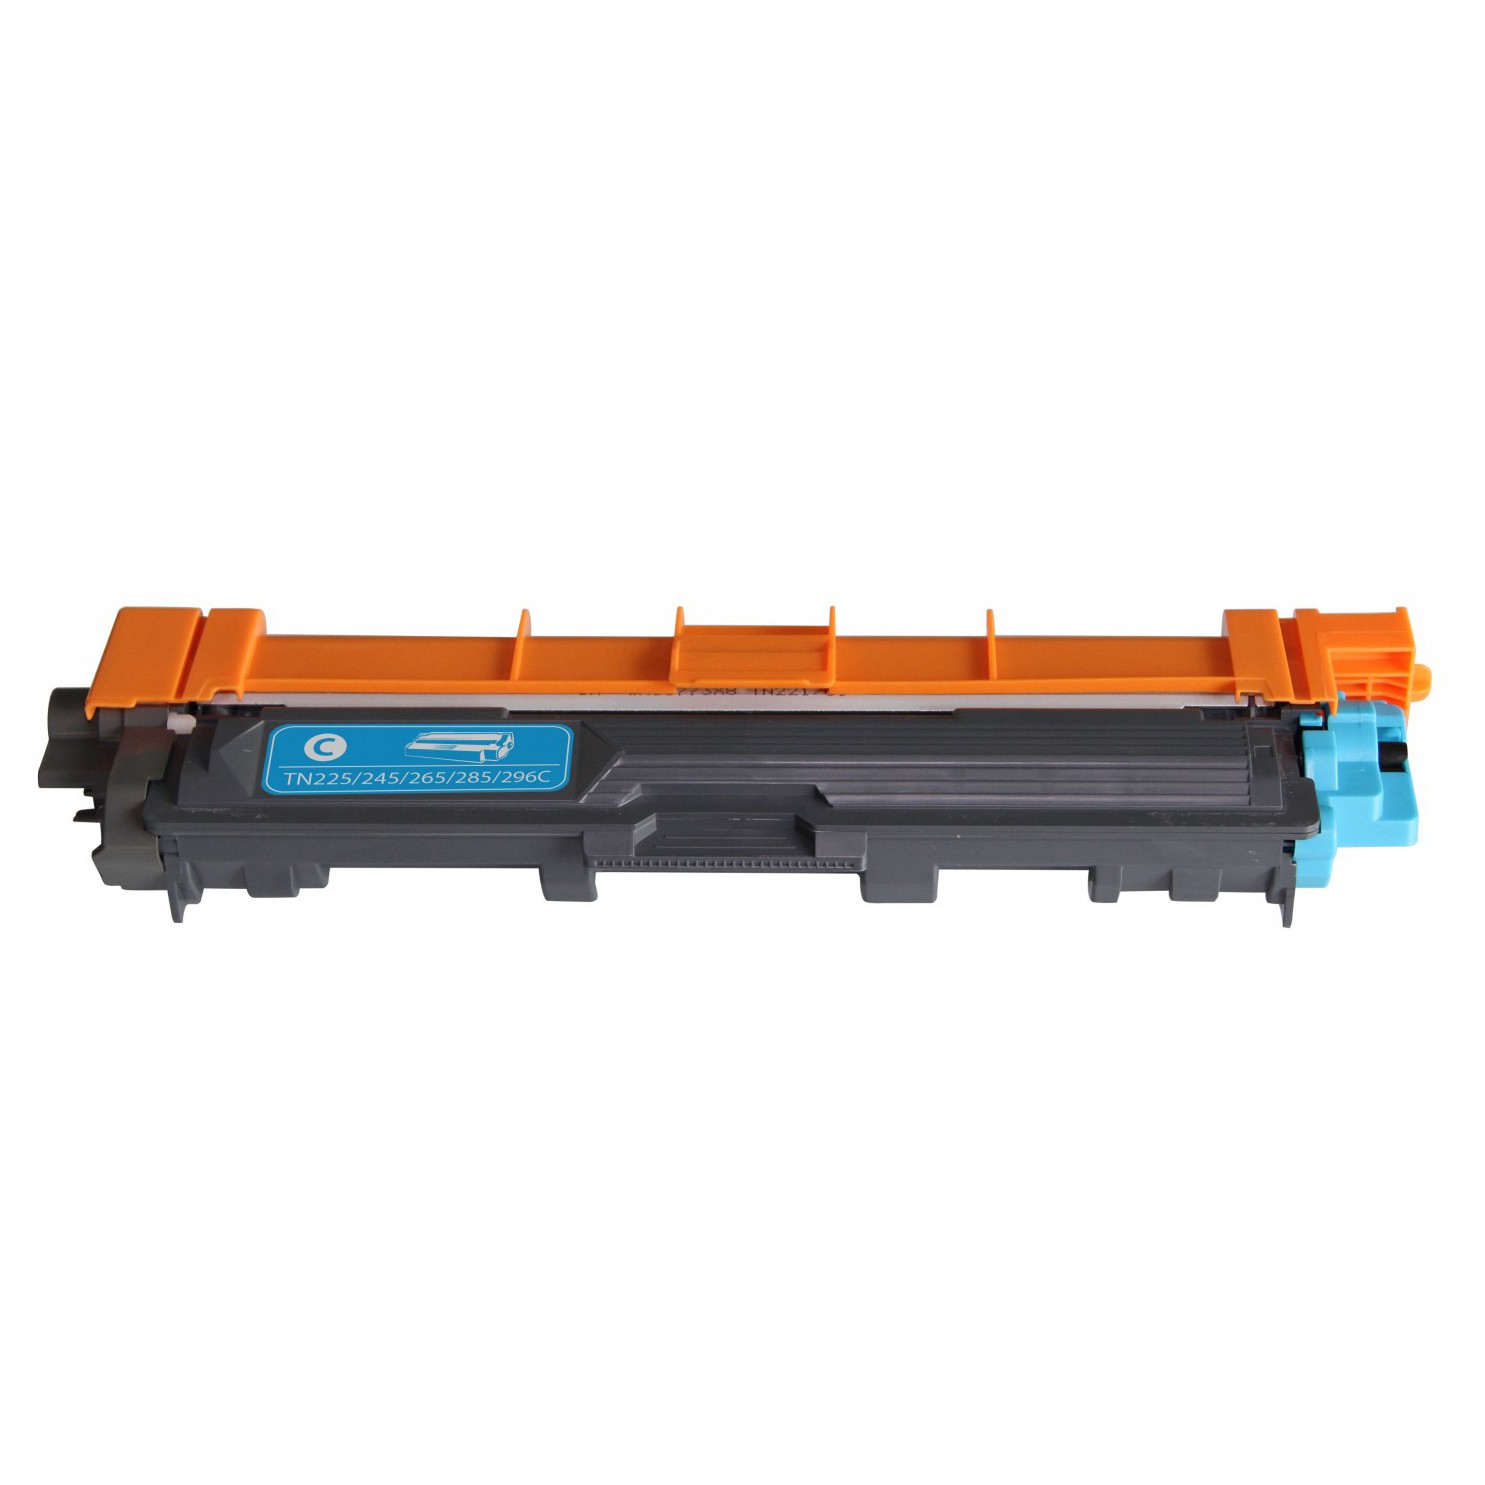 Brother TN225 C Lasertoner, Cyan, kompatibel (2200 sider)